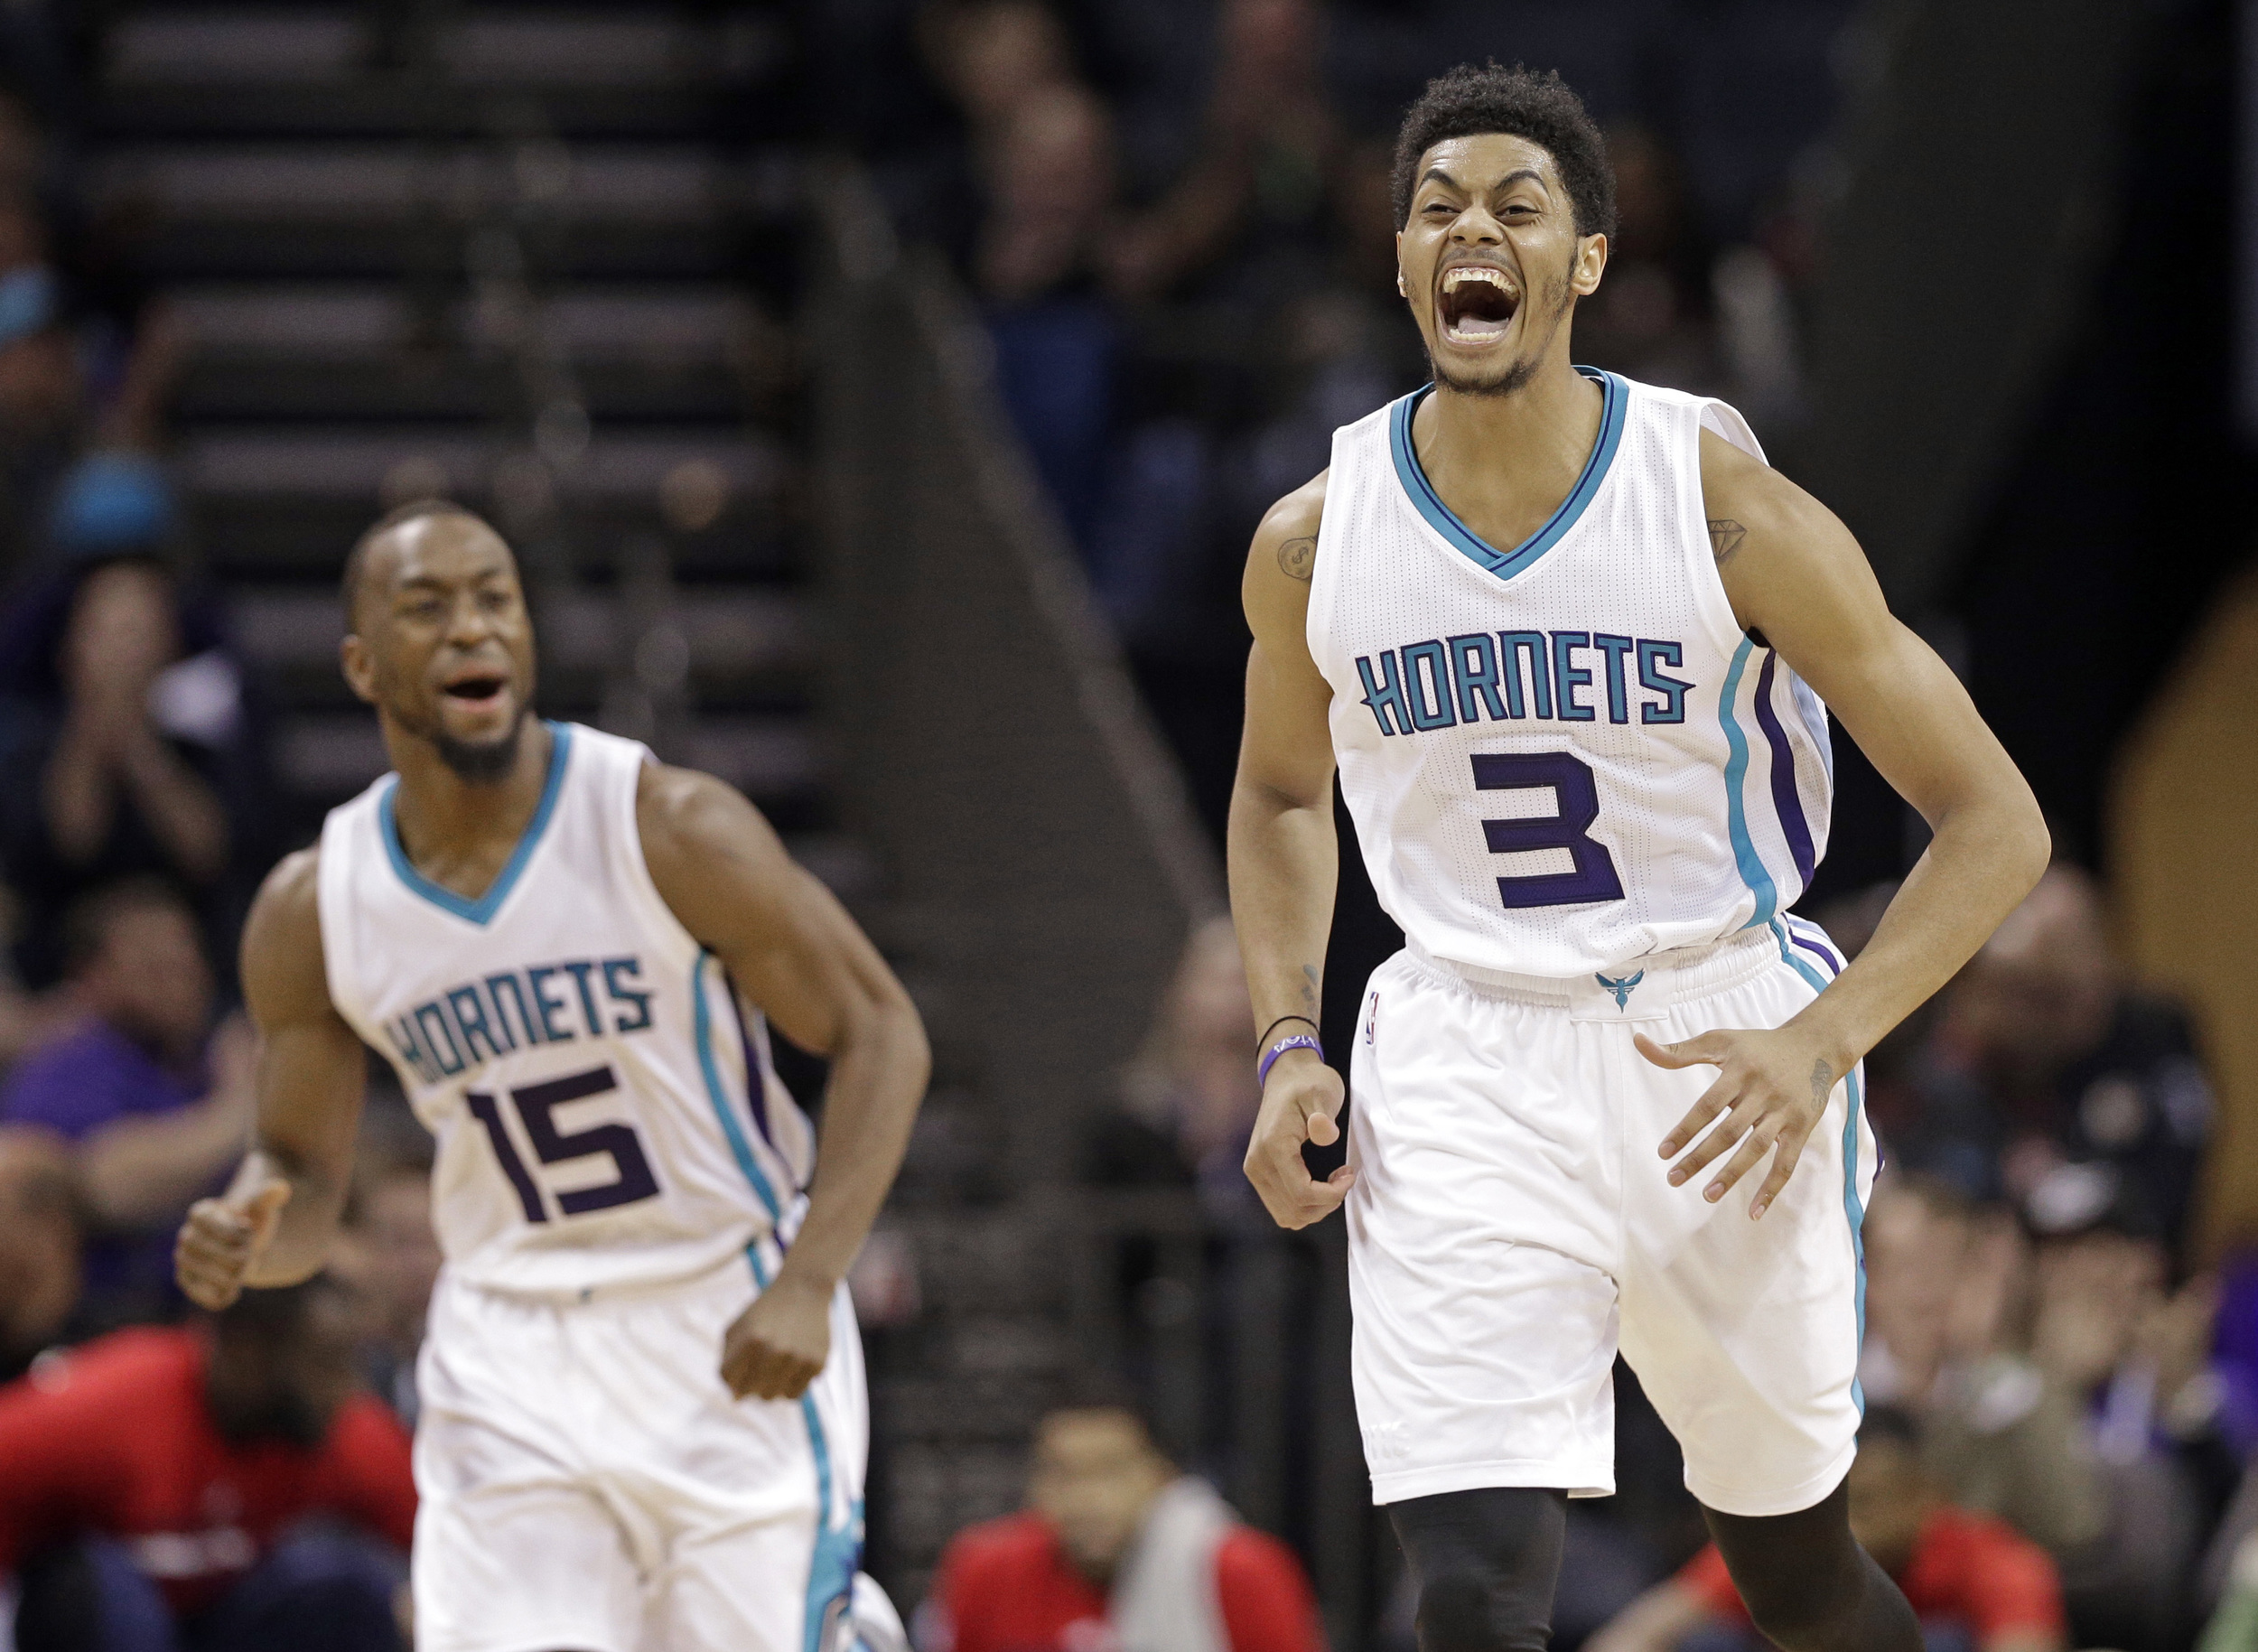 Charlotte Hornets' Jeremy Lamb (3) and Kemba Walker (15) react after Lamb's basket against the Washington Wizards in the second half of an NBA basketball game in Charlotte, N.C., Wednesday, Nov. 25, 2015. The Hornets won 101-87. (Chuck Burton/AP)